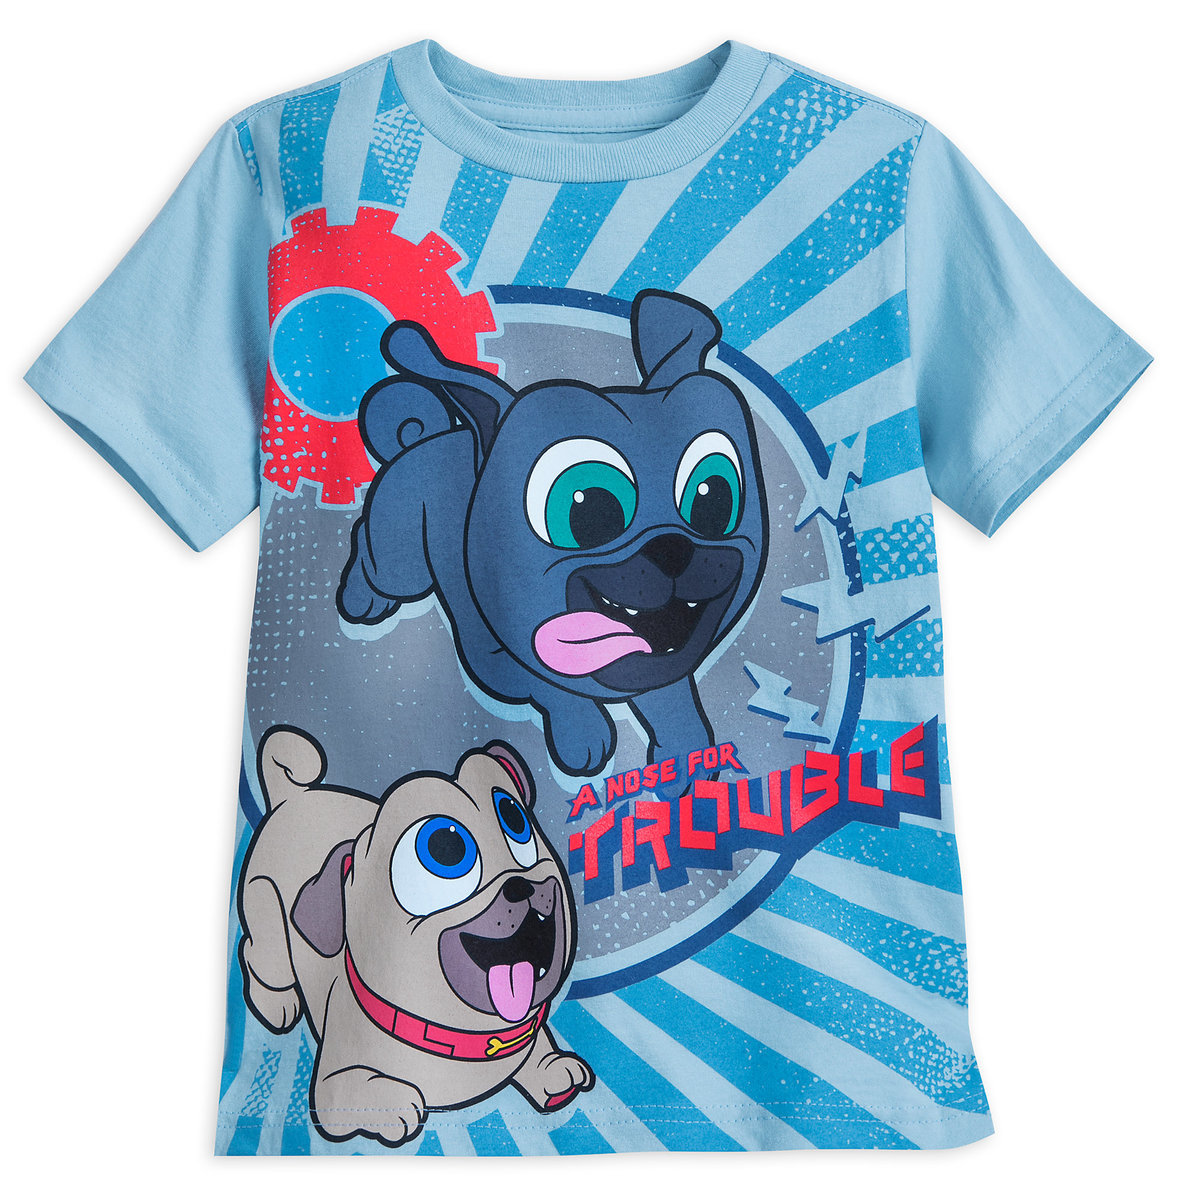 Bingo and Rolly T-Shirt for Boys - Puppy Dog Pals   shopDisney